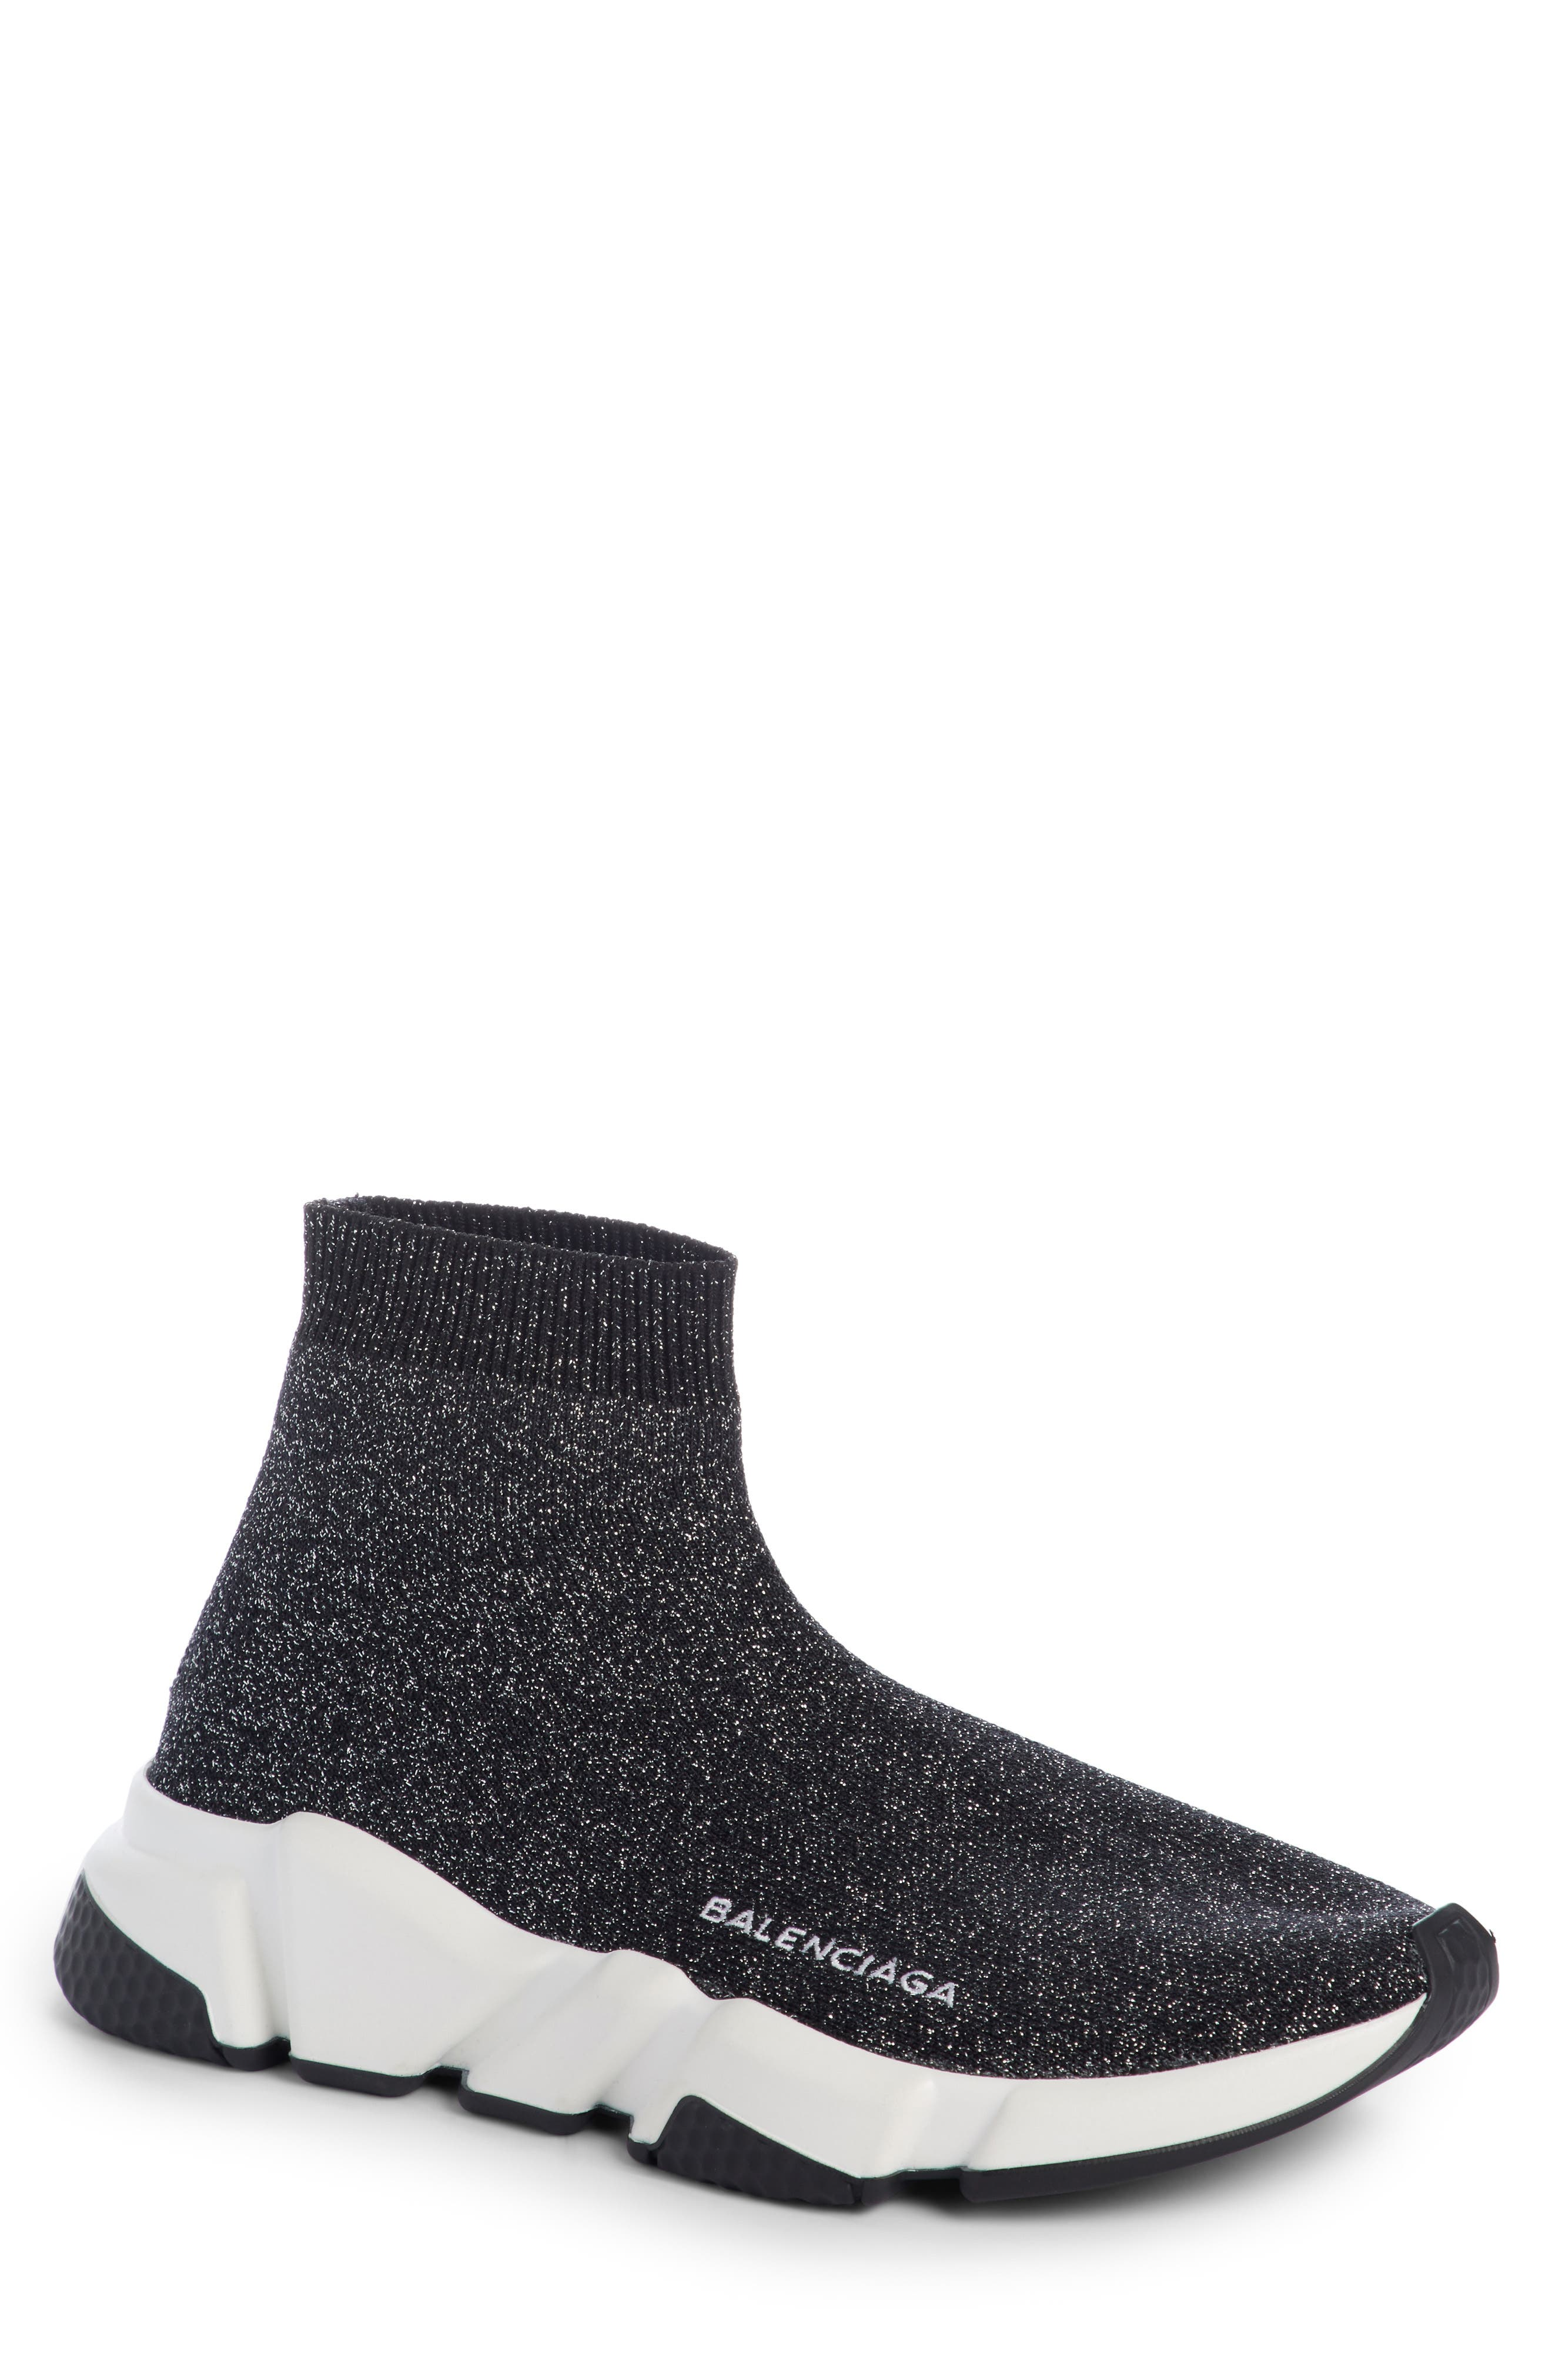 Alternate Image 1 Selected - Balenciaga Speed Mid Sneaker (Women)